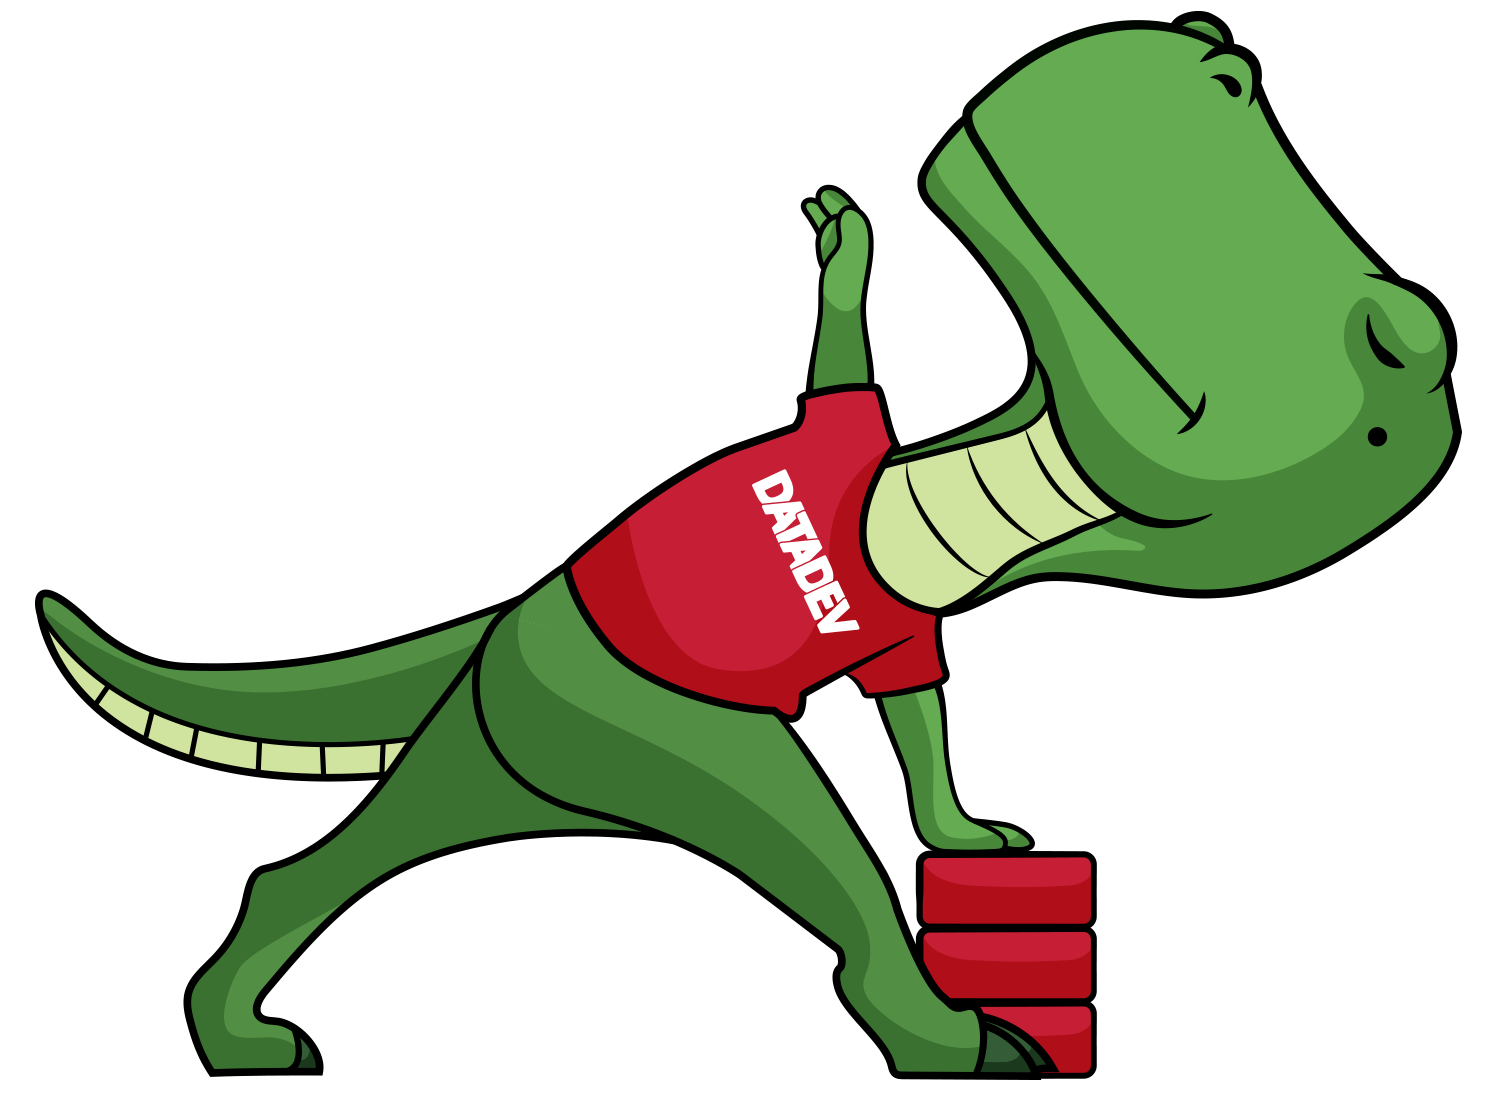 DataDev mascot, Flex the T-Rex